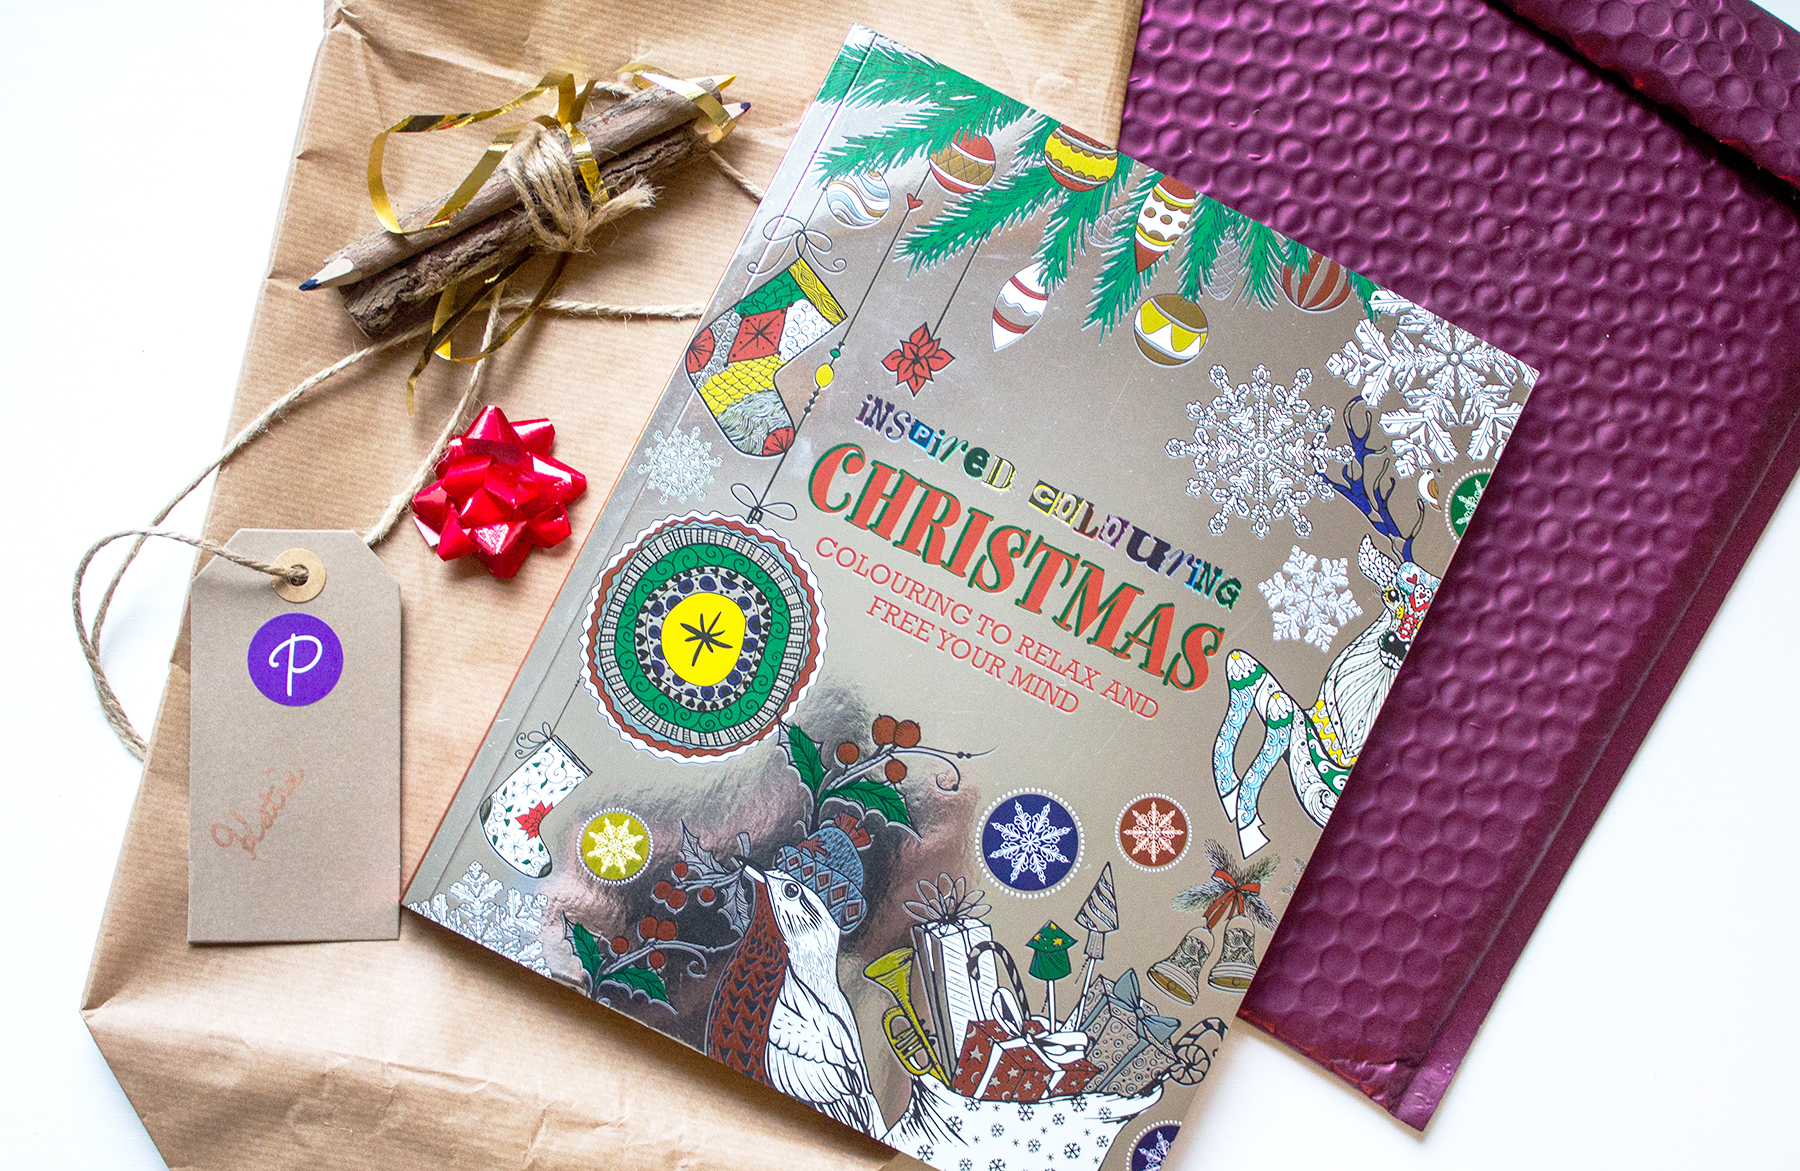 Inspired Colouring Christmas* // #18 of Blogmas '16